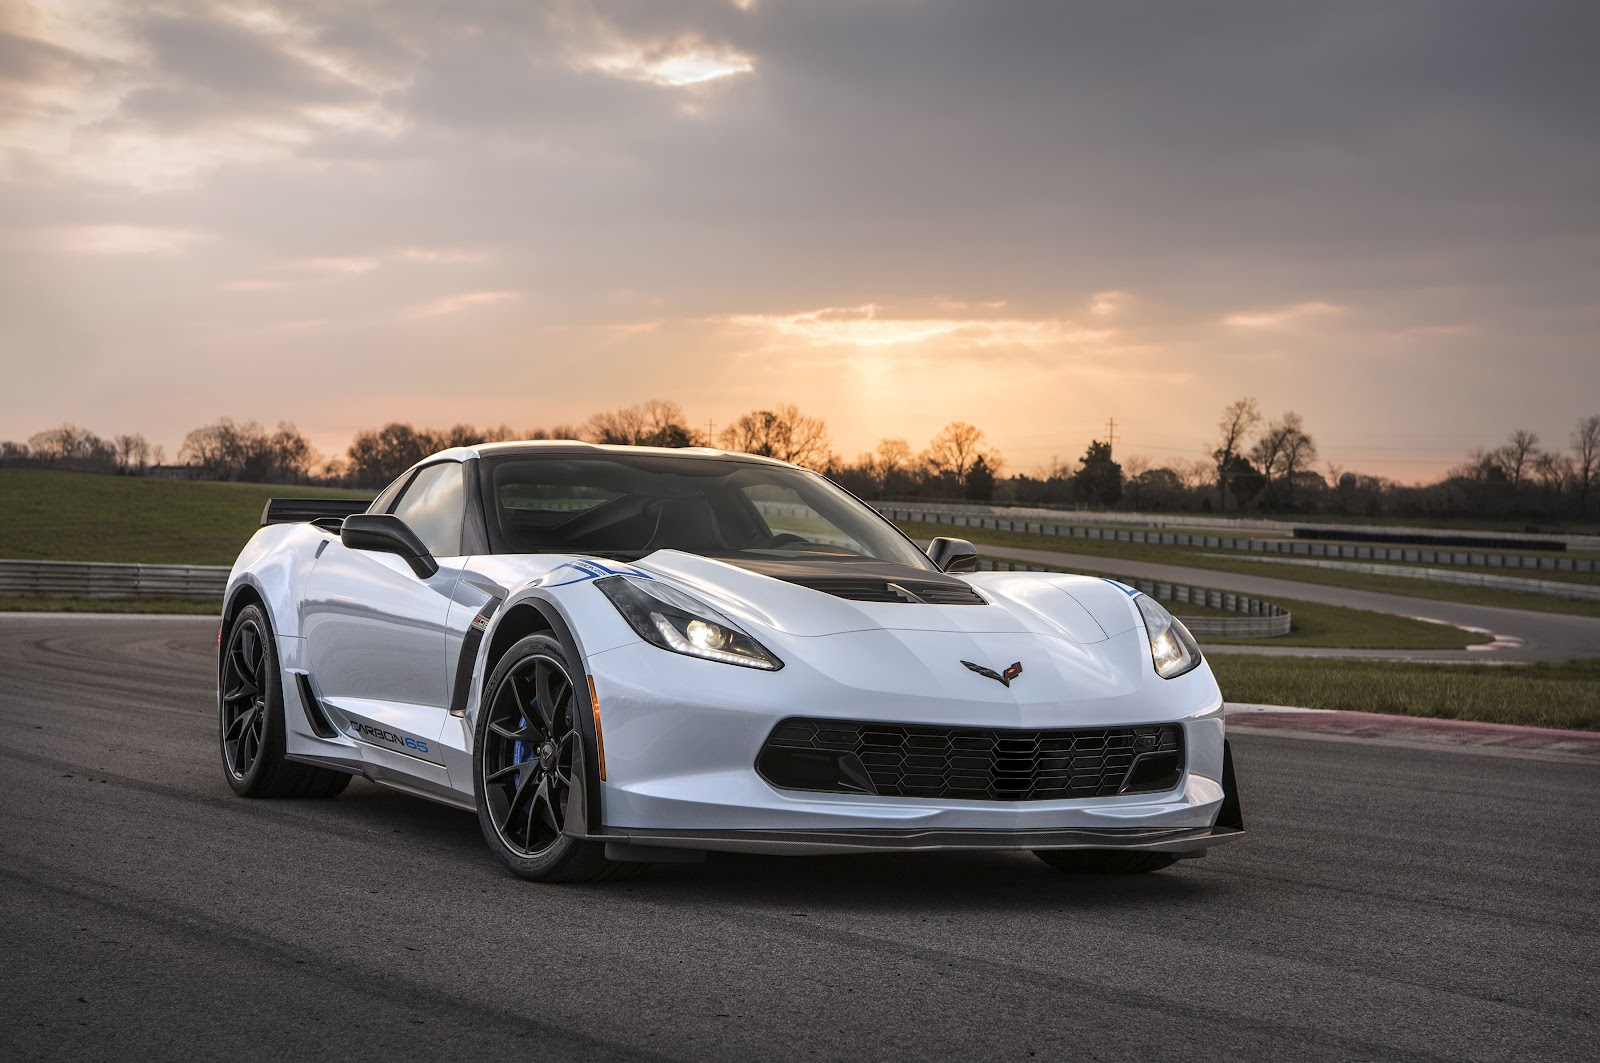 The All New 2018 Chevrolet Corvette Is Here, And You Can Get Yours At The  #1 Corvette Dealer In Oklahoma, Landers Chevrolet Of Norman.